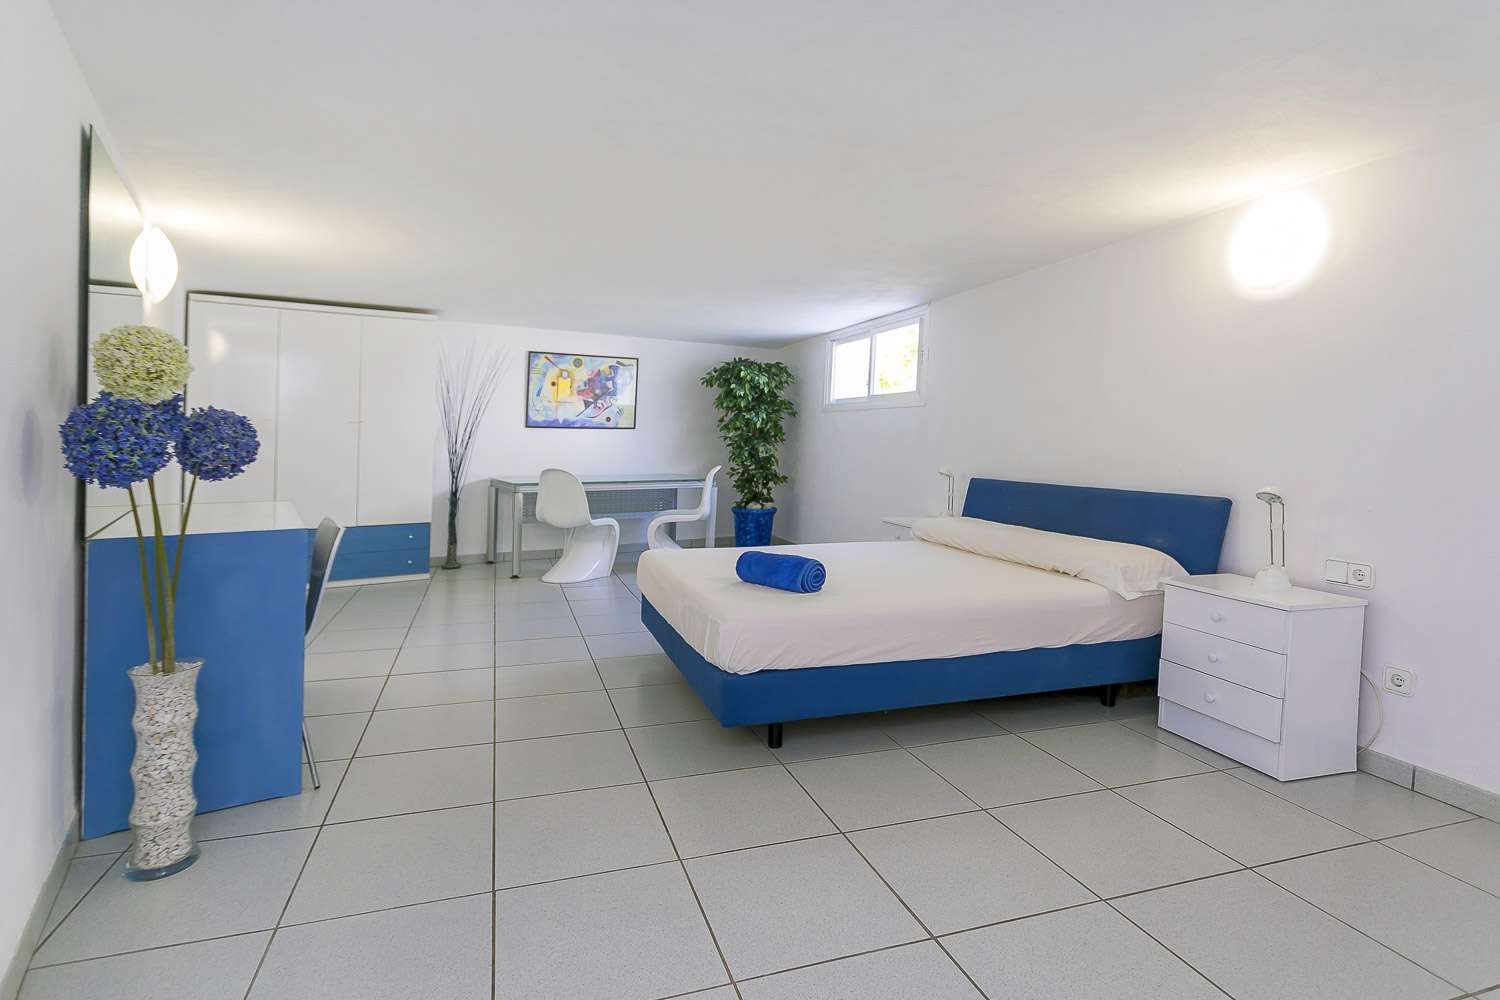 double room in house for rent in ibiza